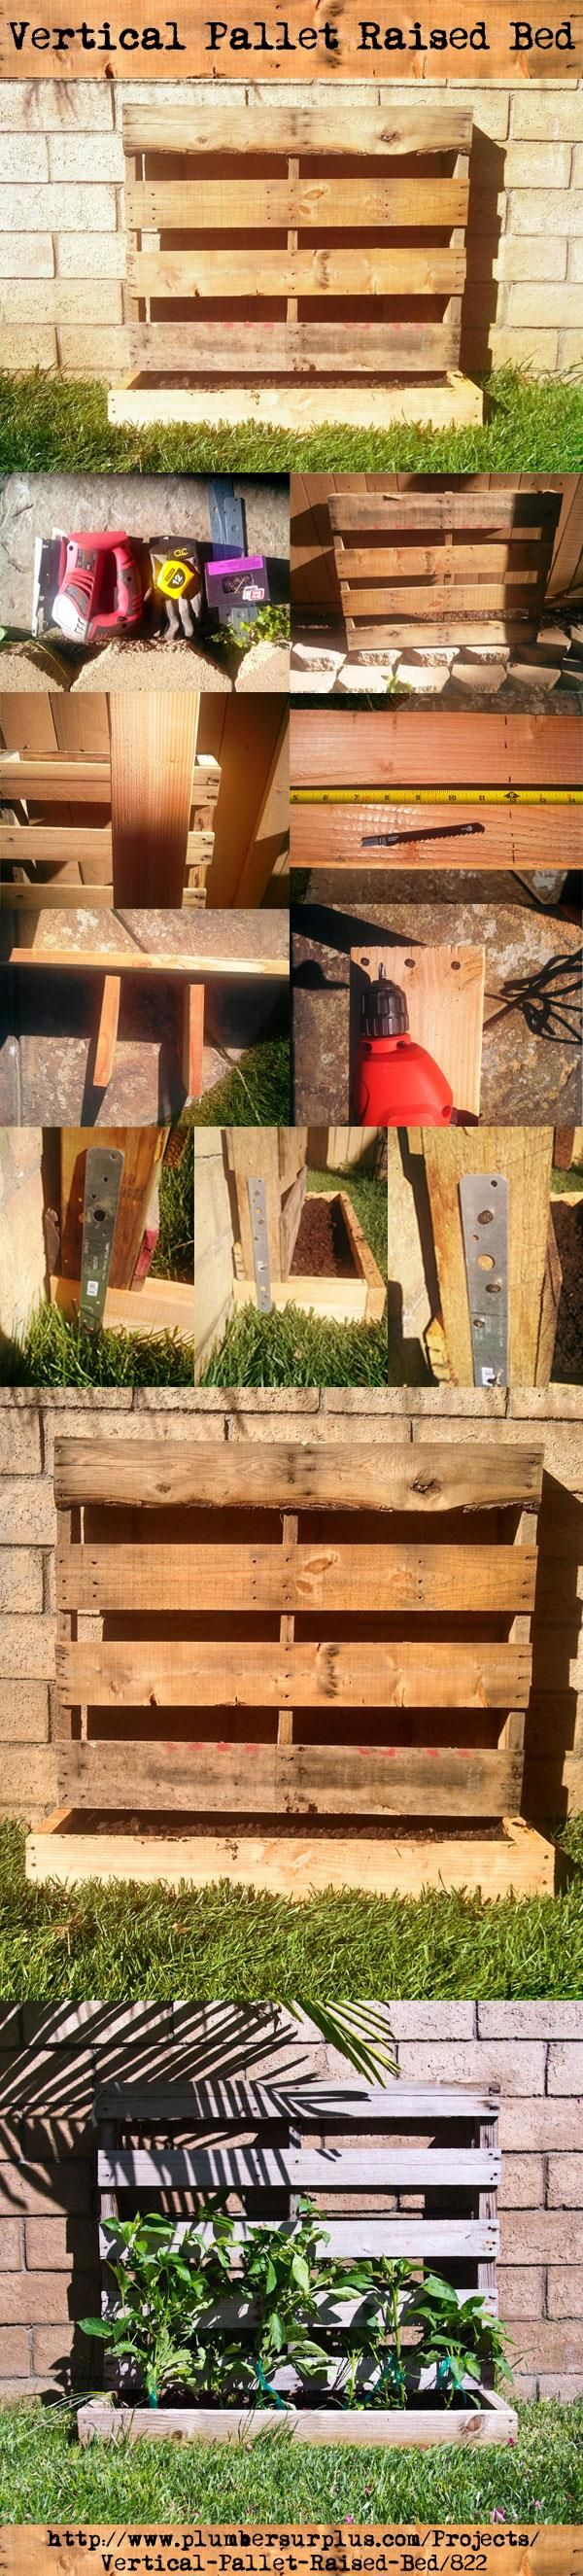 9 best images about our diy projects on pinterest garden for Vertical pallet garden bed